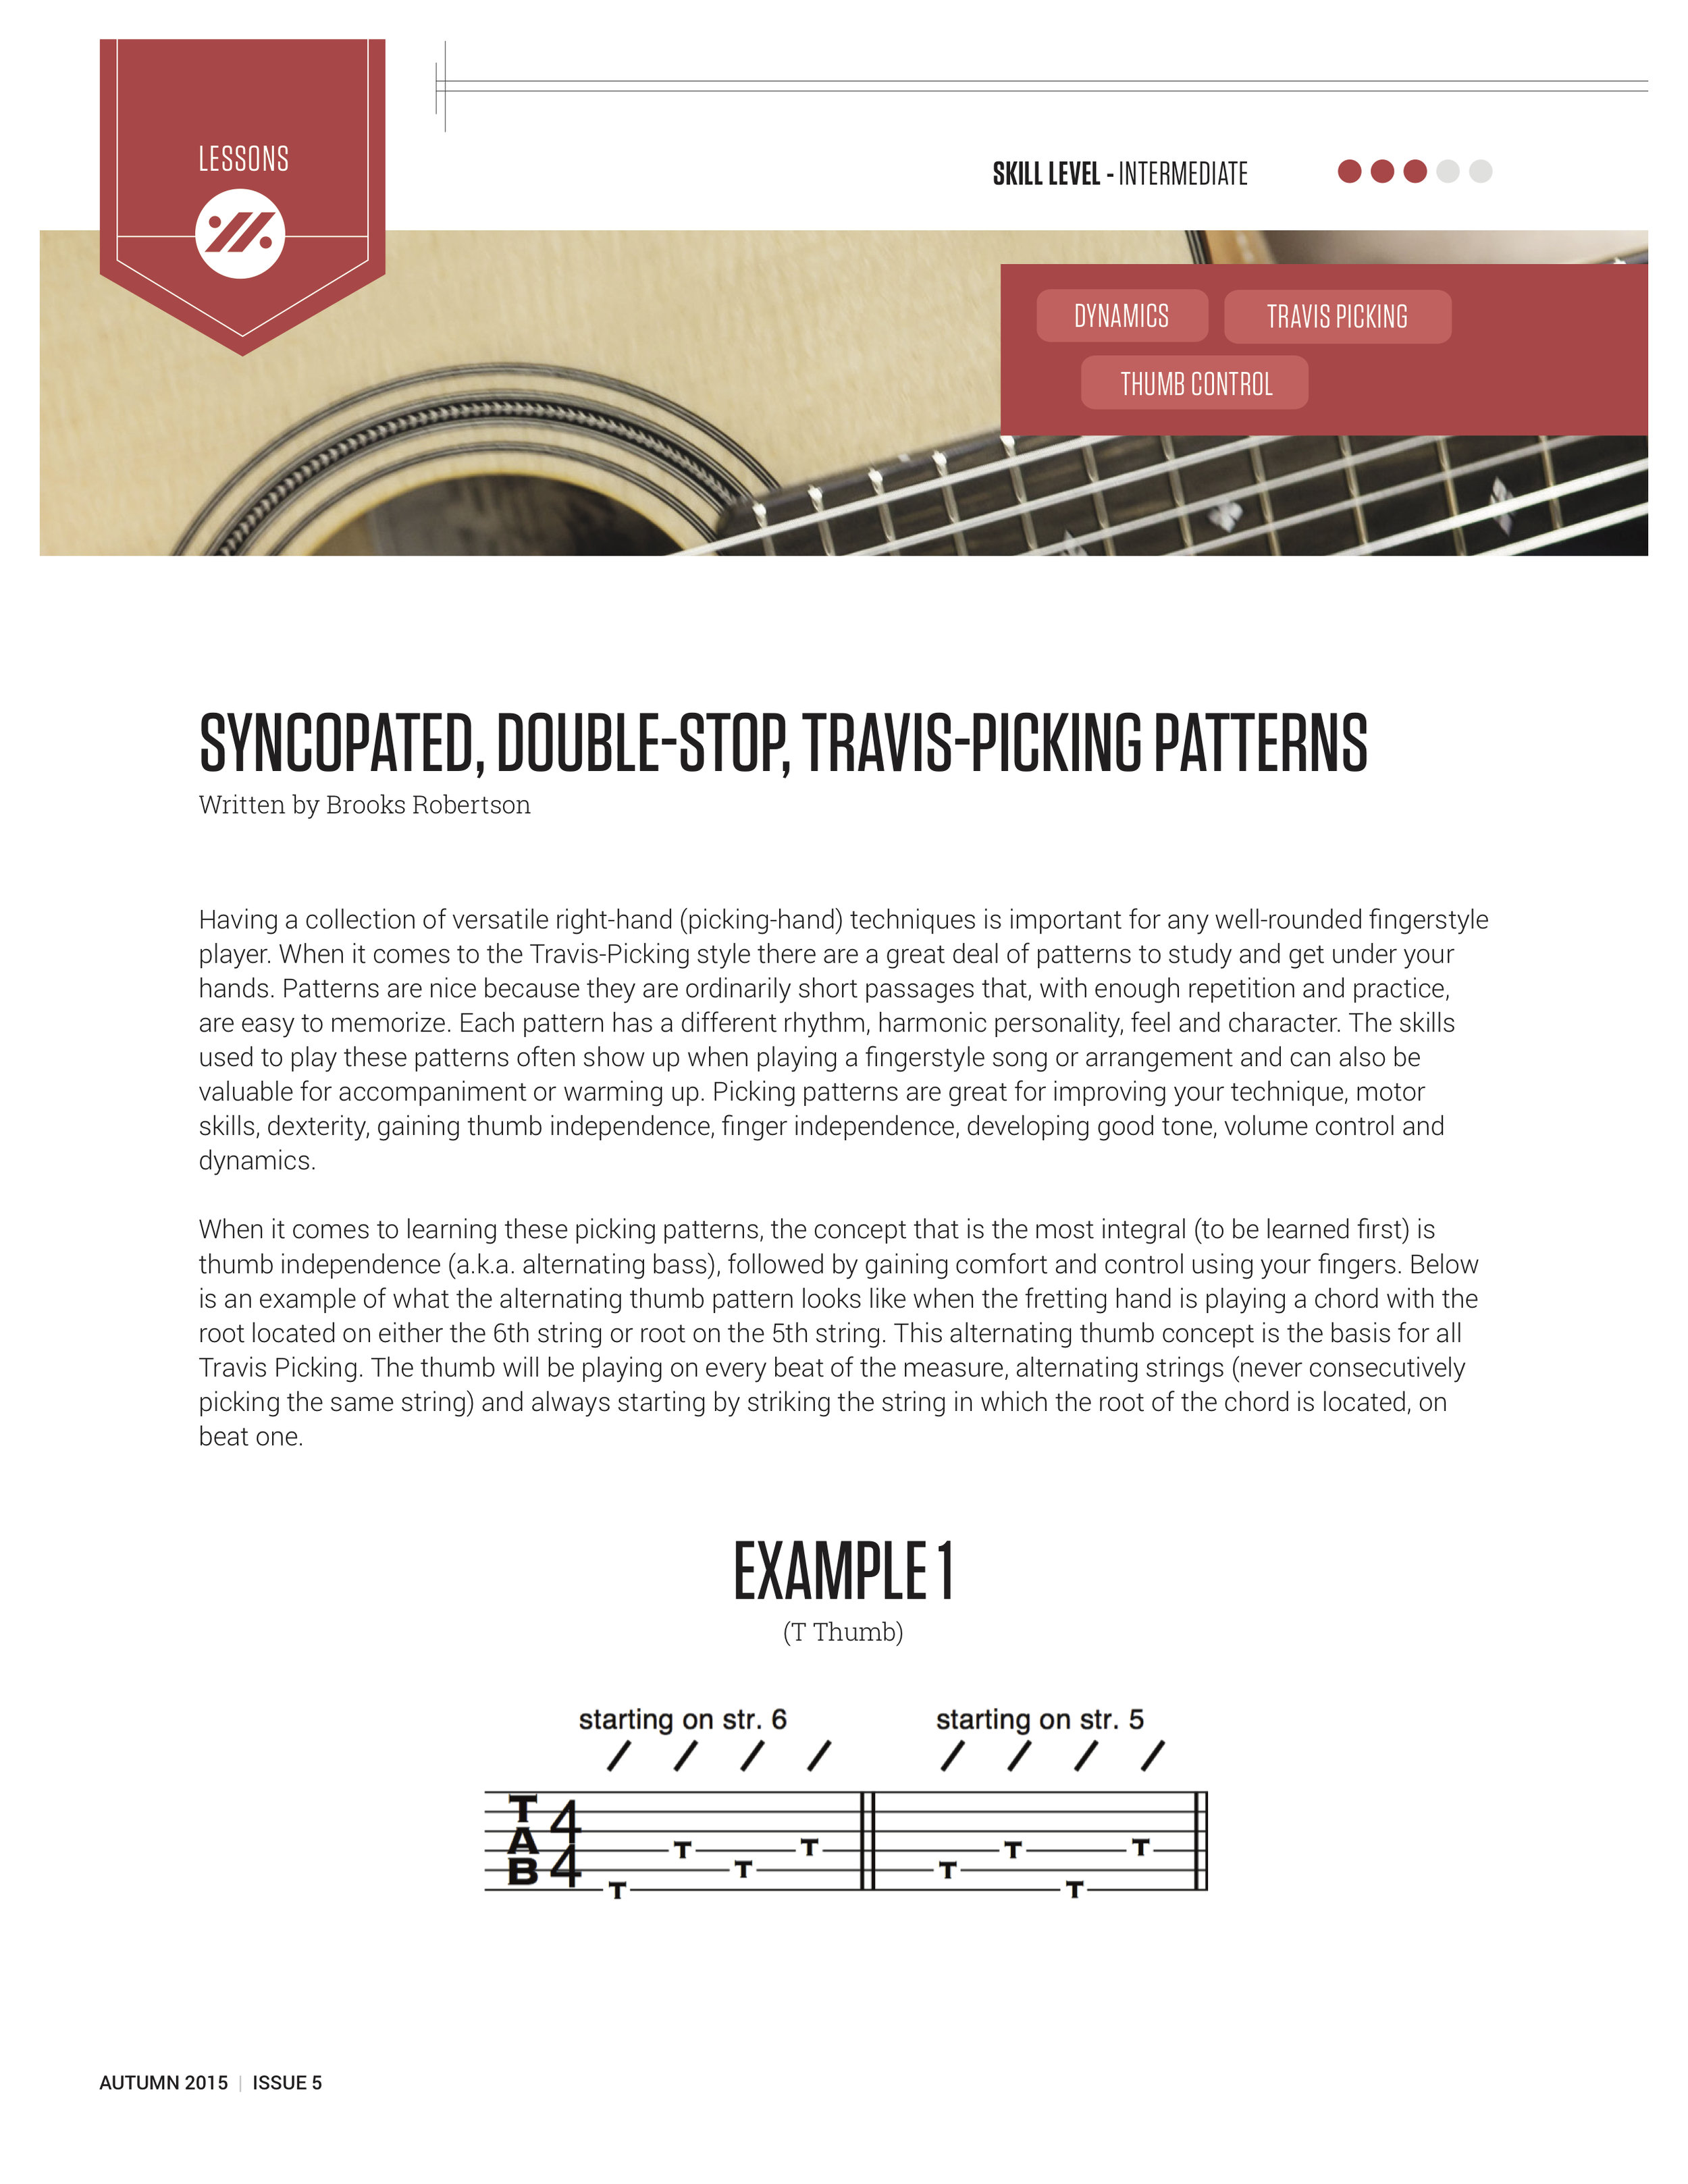 Double Stop Picking Patterns Article RIFF.jpg